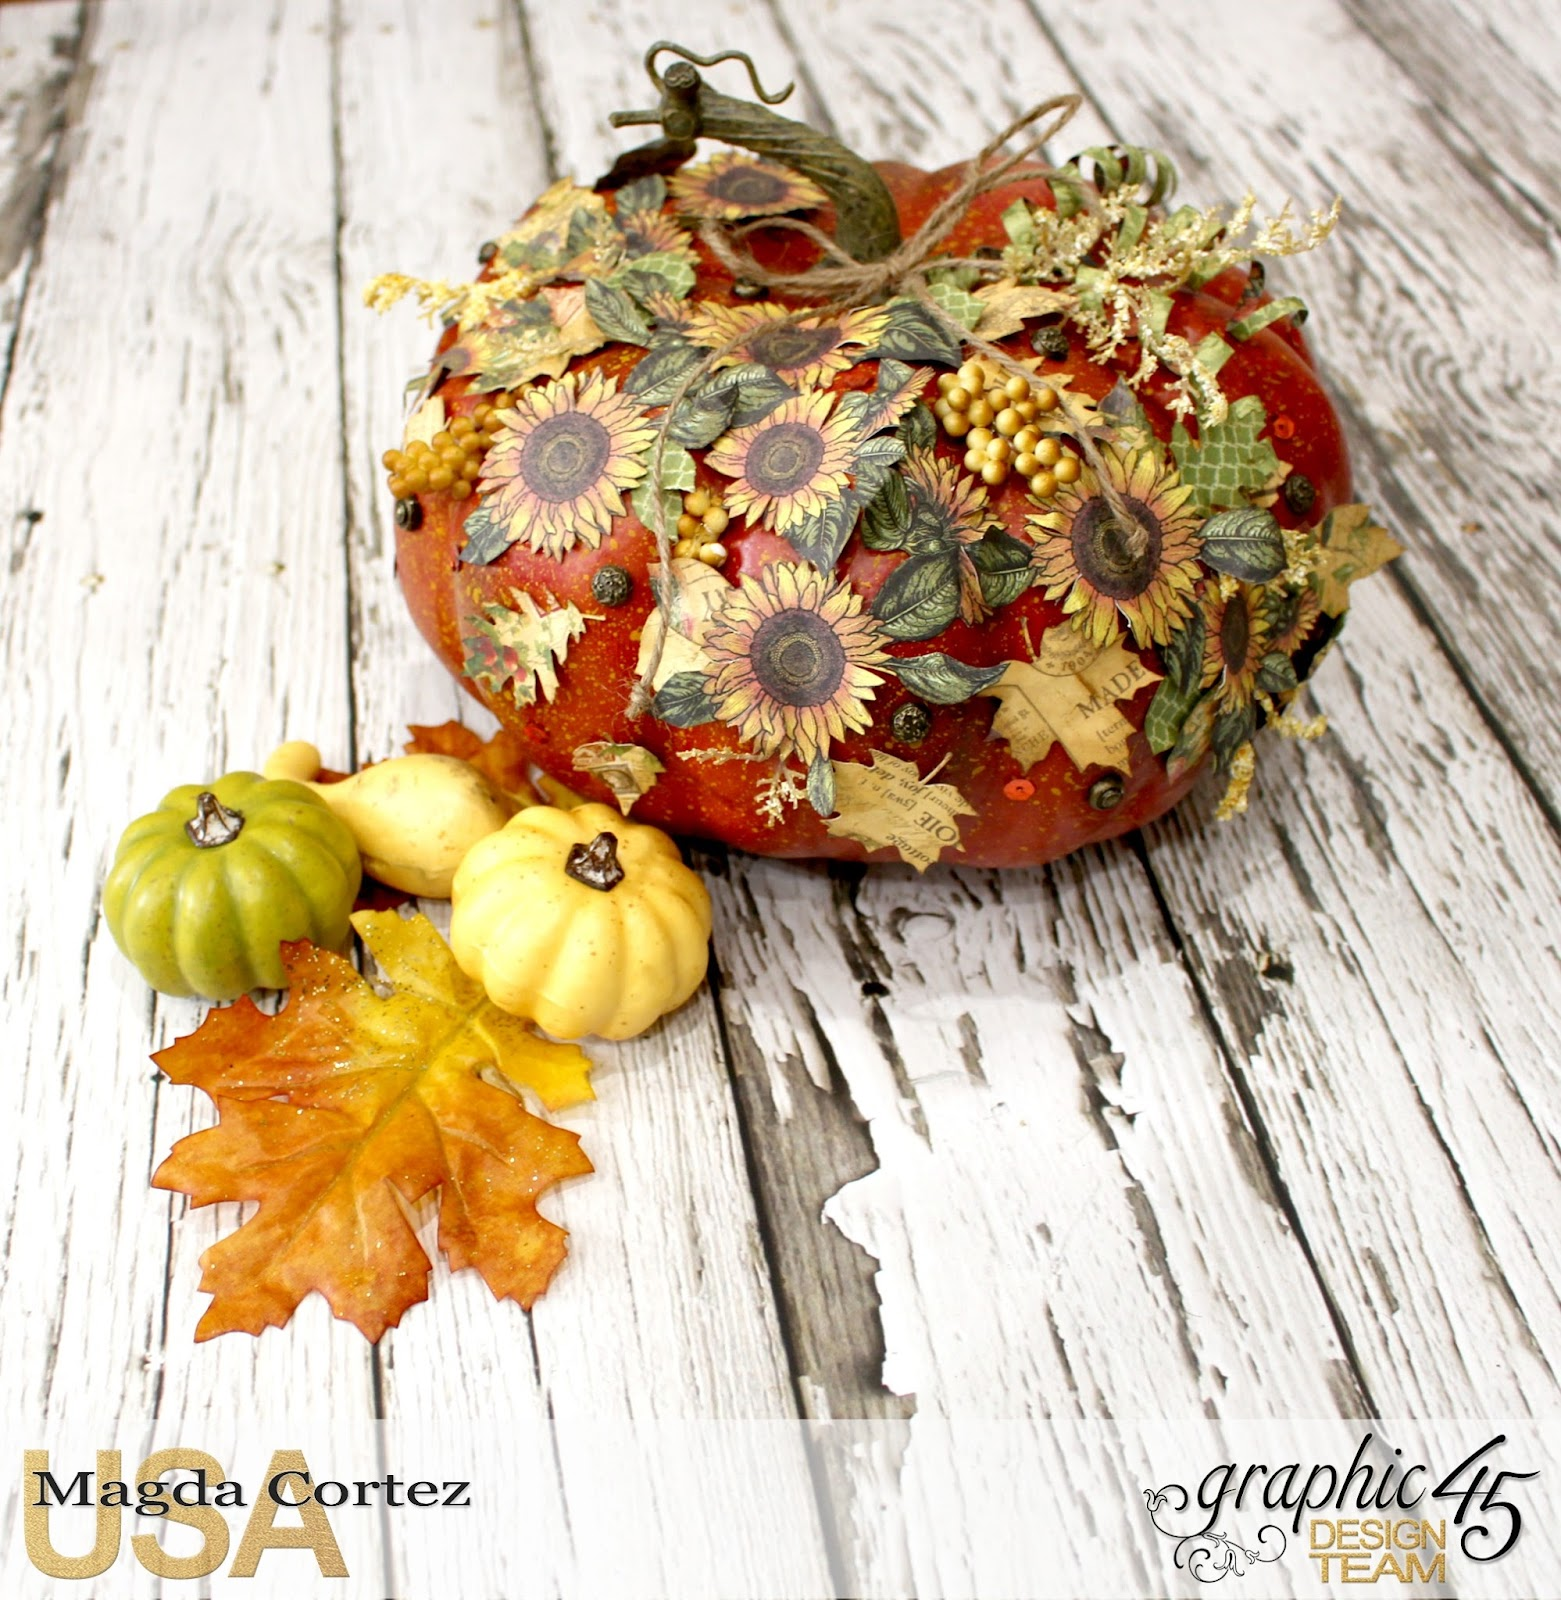 Fall Decor-French Country By Magda Cortez, Product of Graphic 45, Photo 01 of 07.jpg